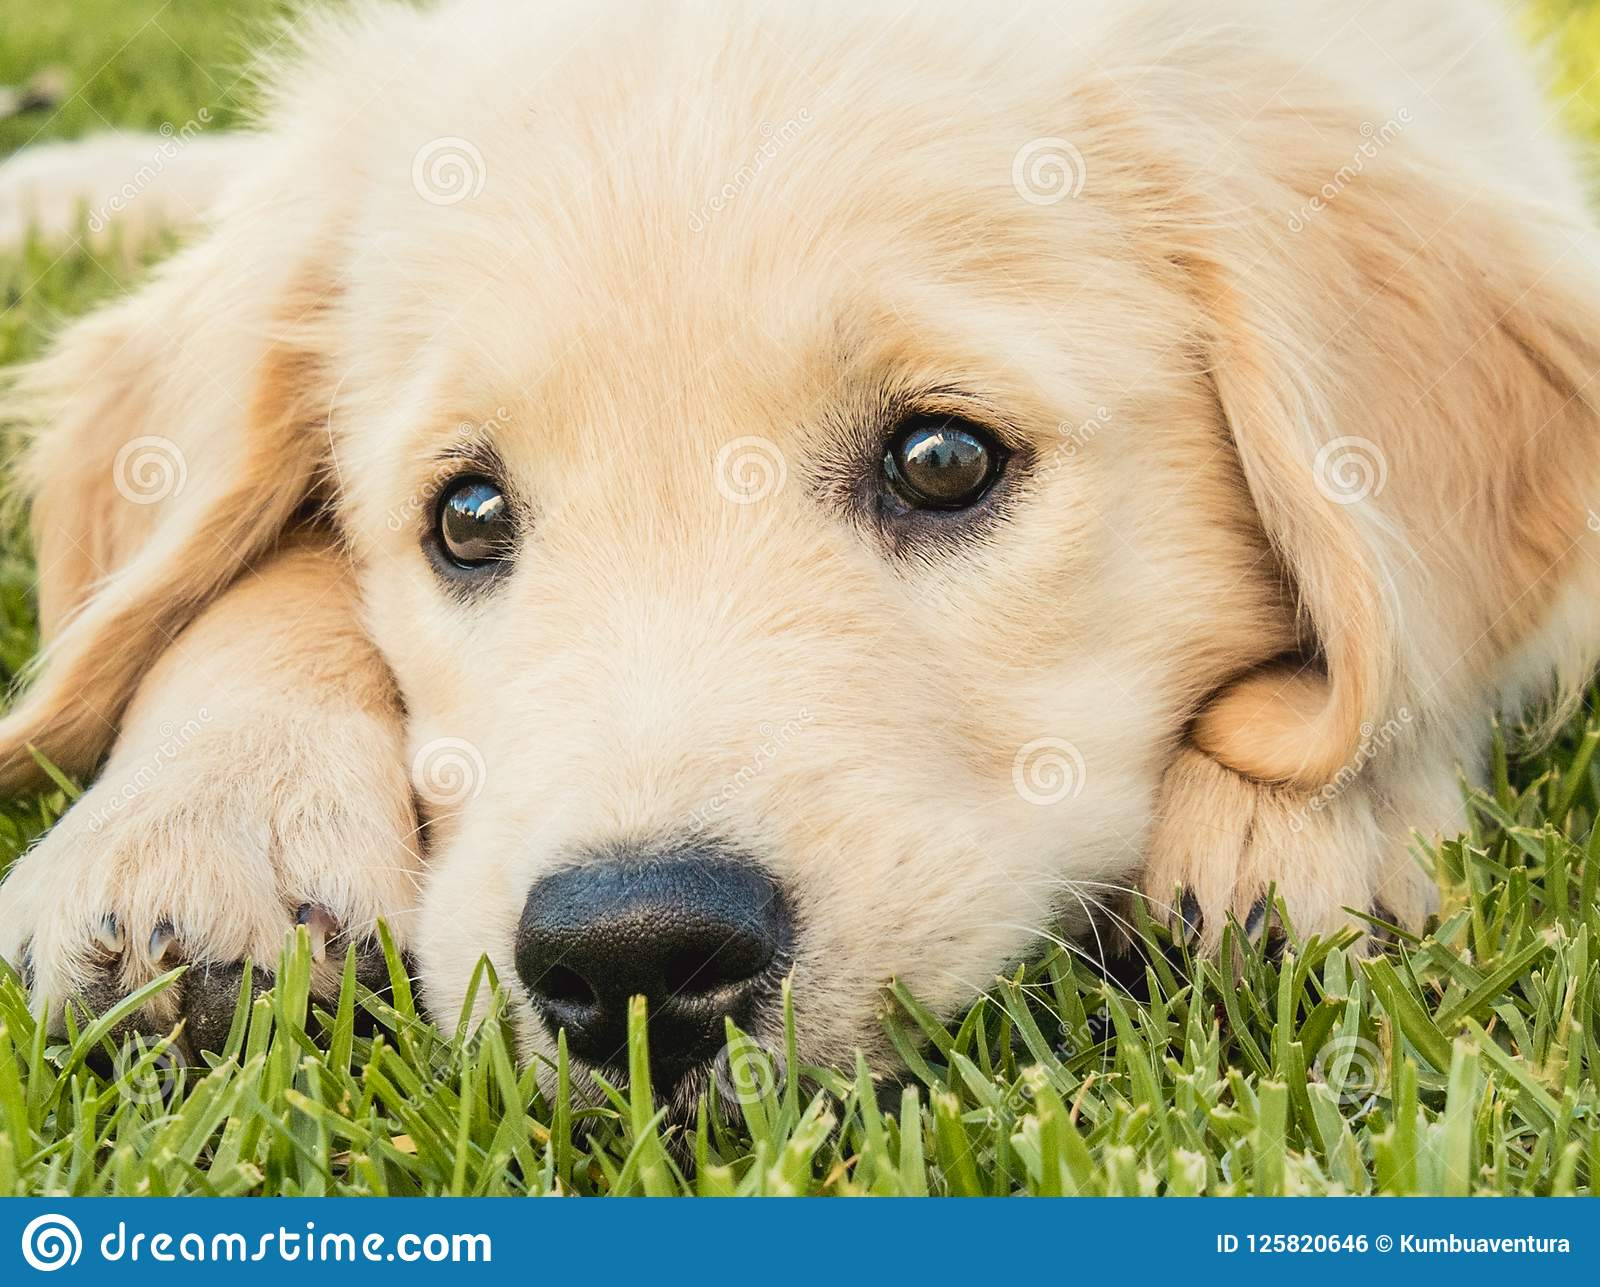 Portrait Of An Adorable Puppy Dog Of The Golden Retriever Breed Stock Photo Image Of Active Portrait 125820646